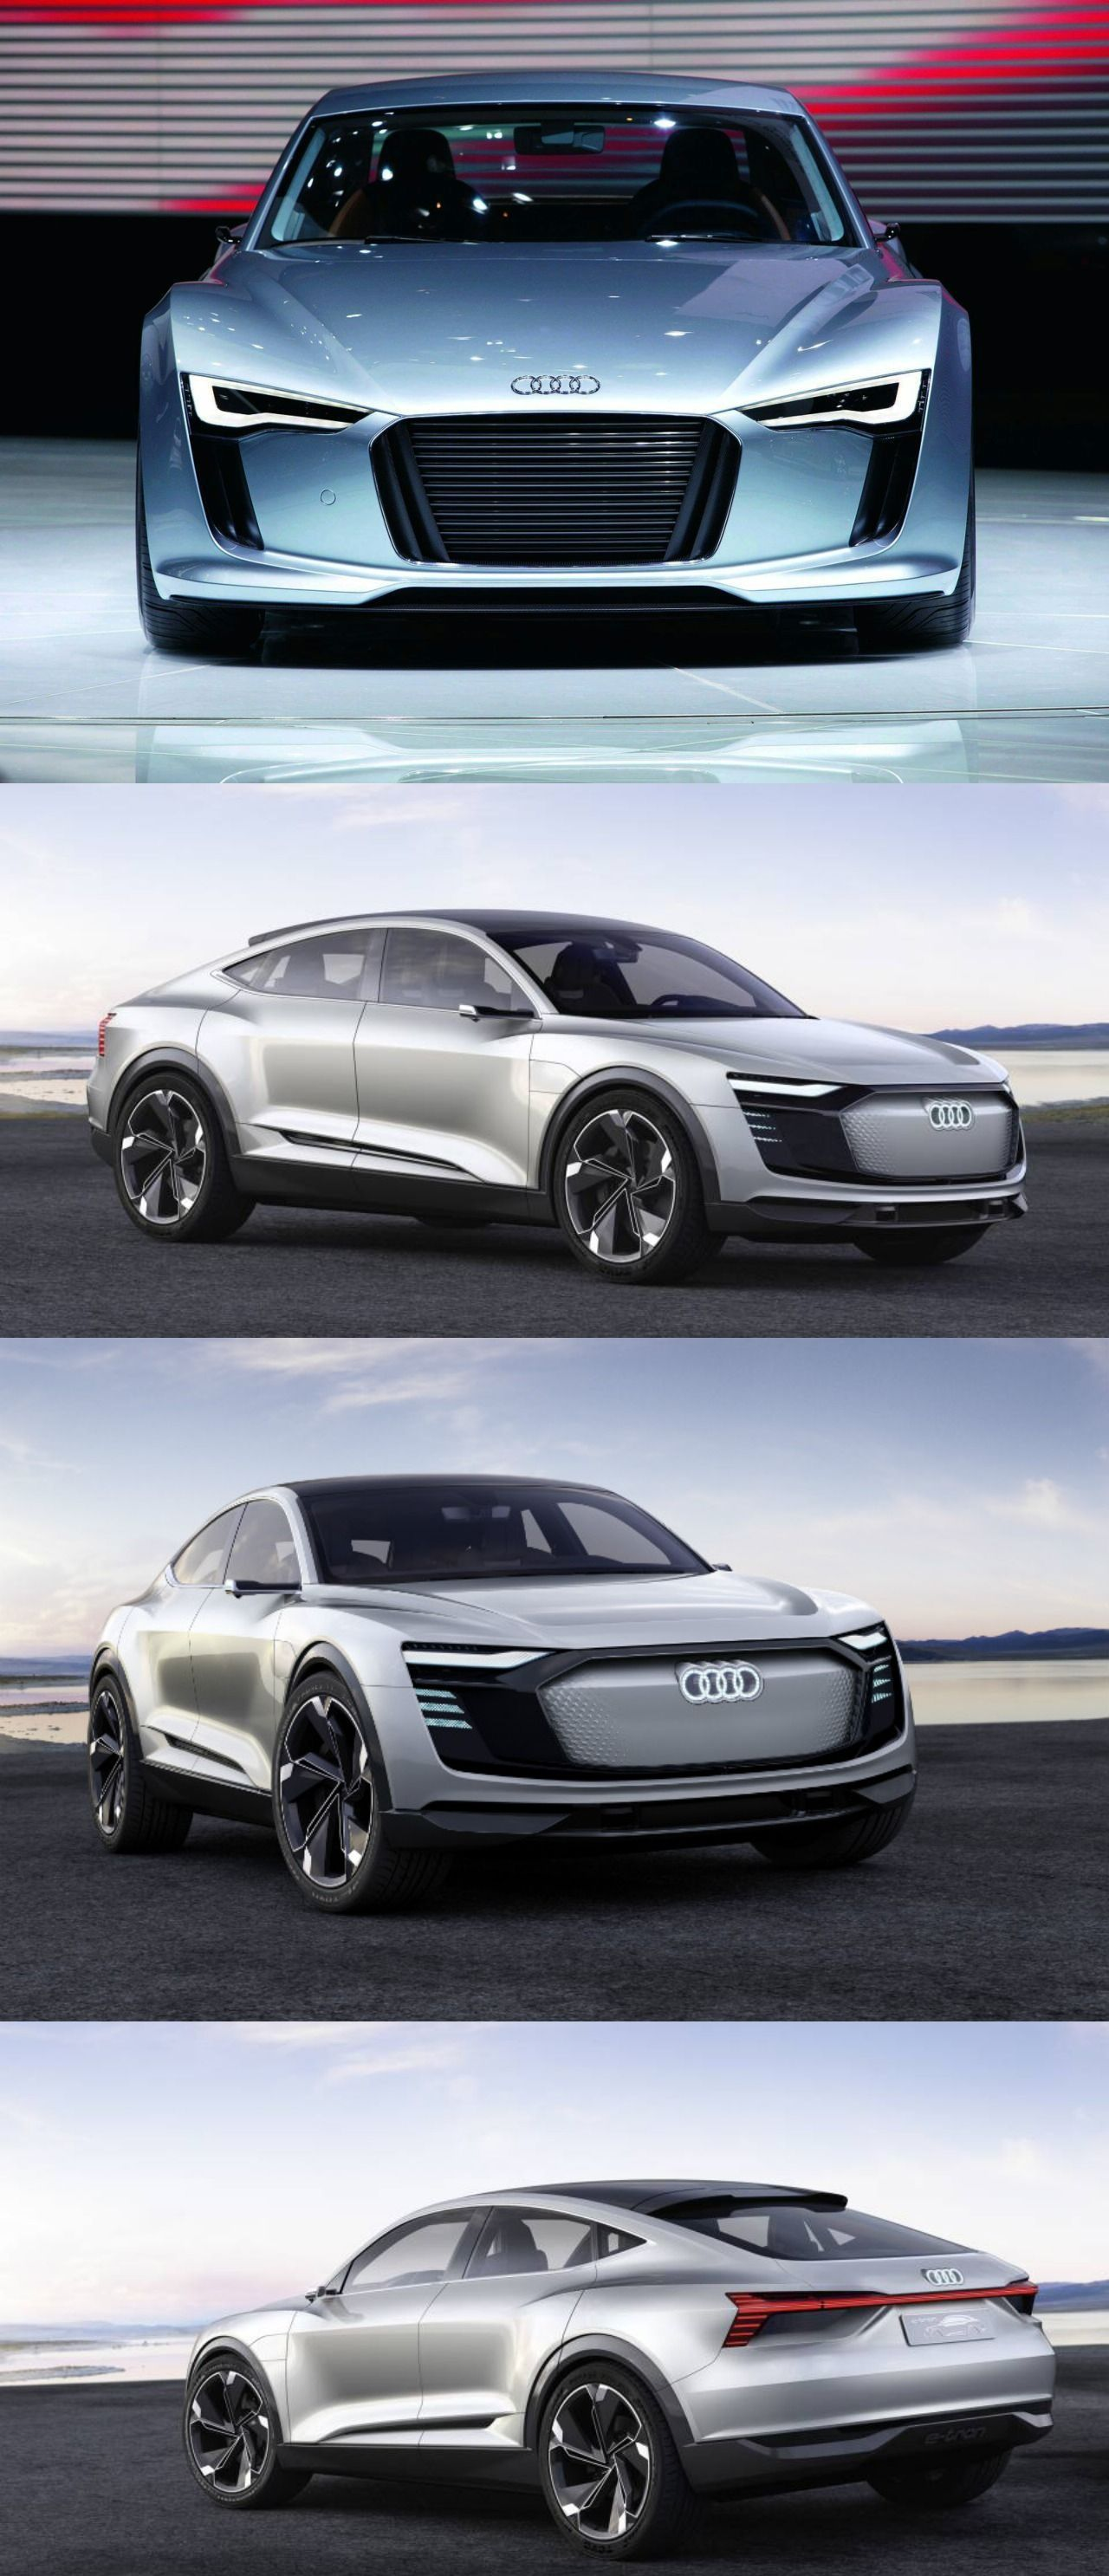 Audi All Set To Roll Out Its Electric Cars In India By 2020 Electric Cars In India Audi Cars Electric Cars